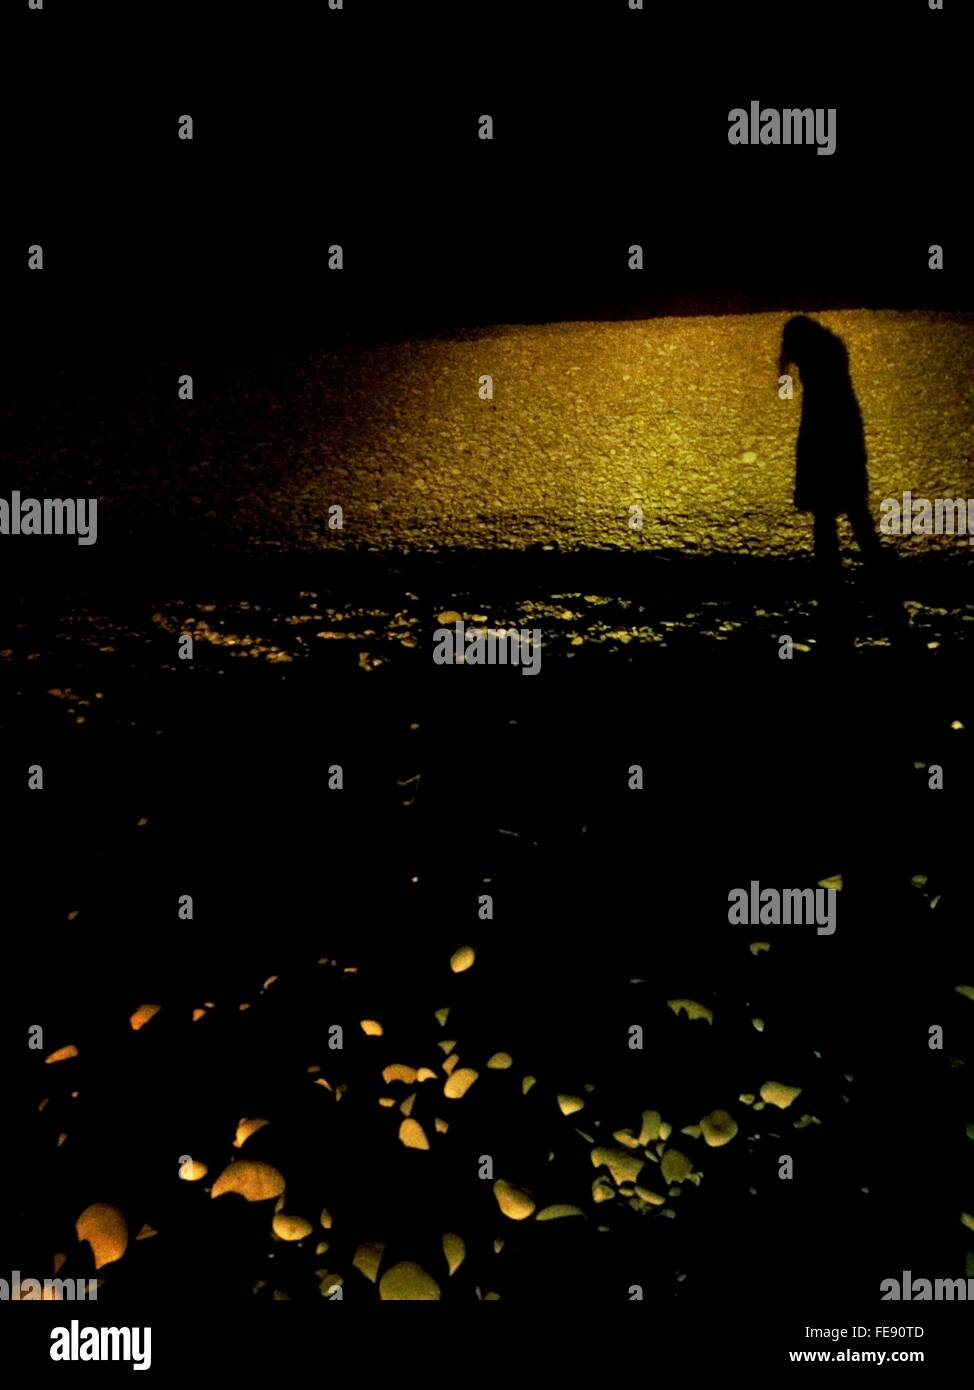 Silhouette Woman On Beach Photo Stock